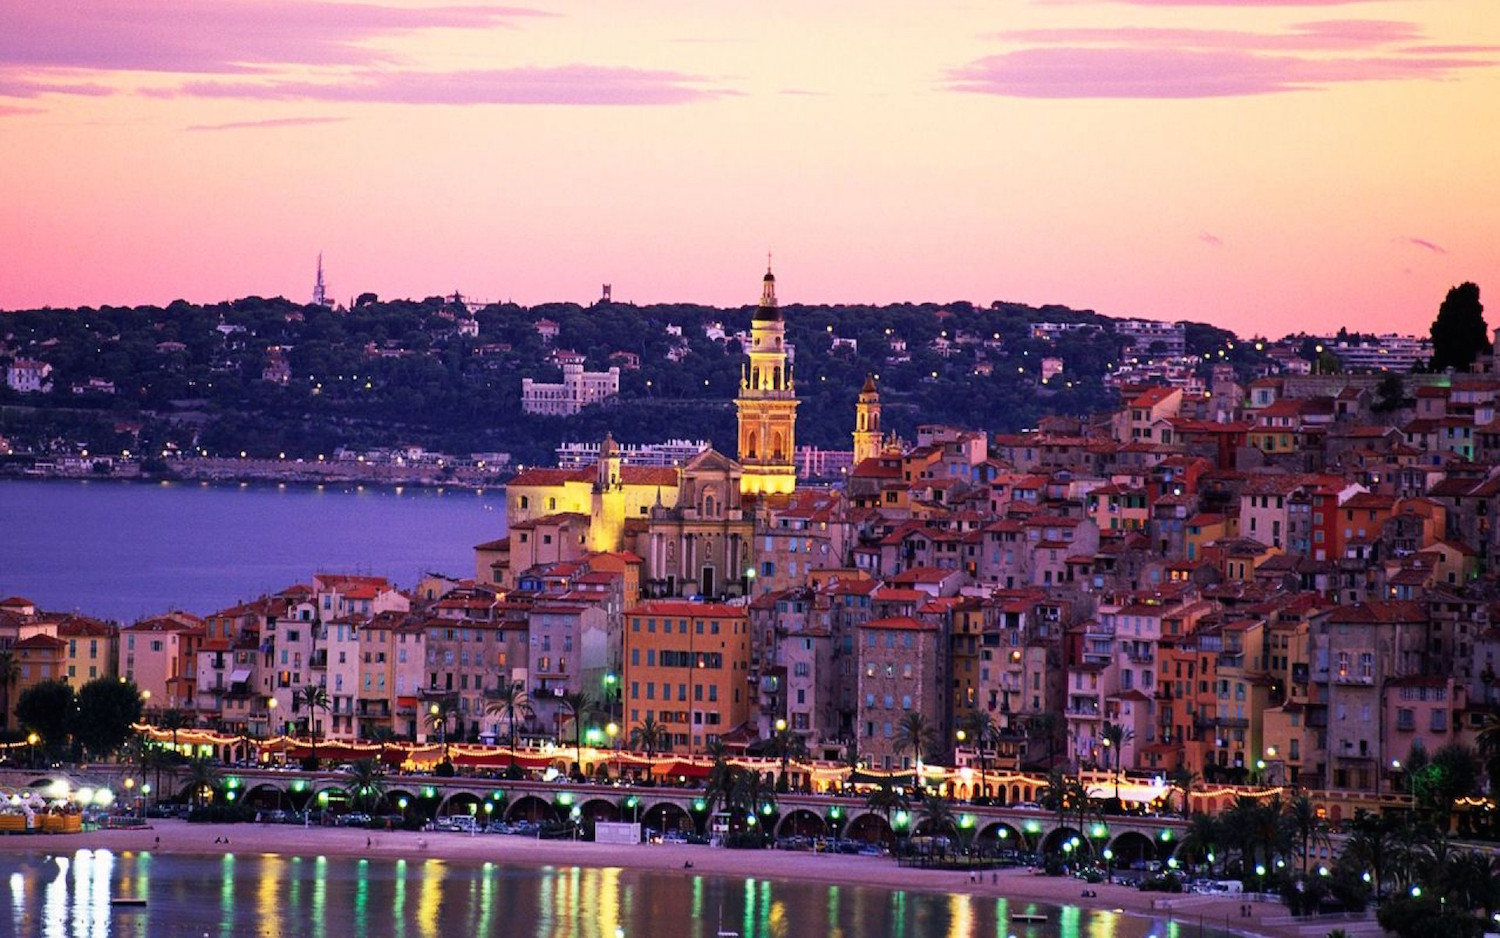 French property market riviera